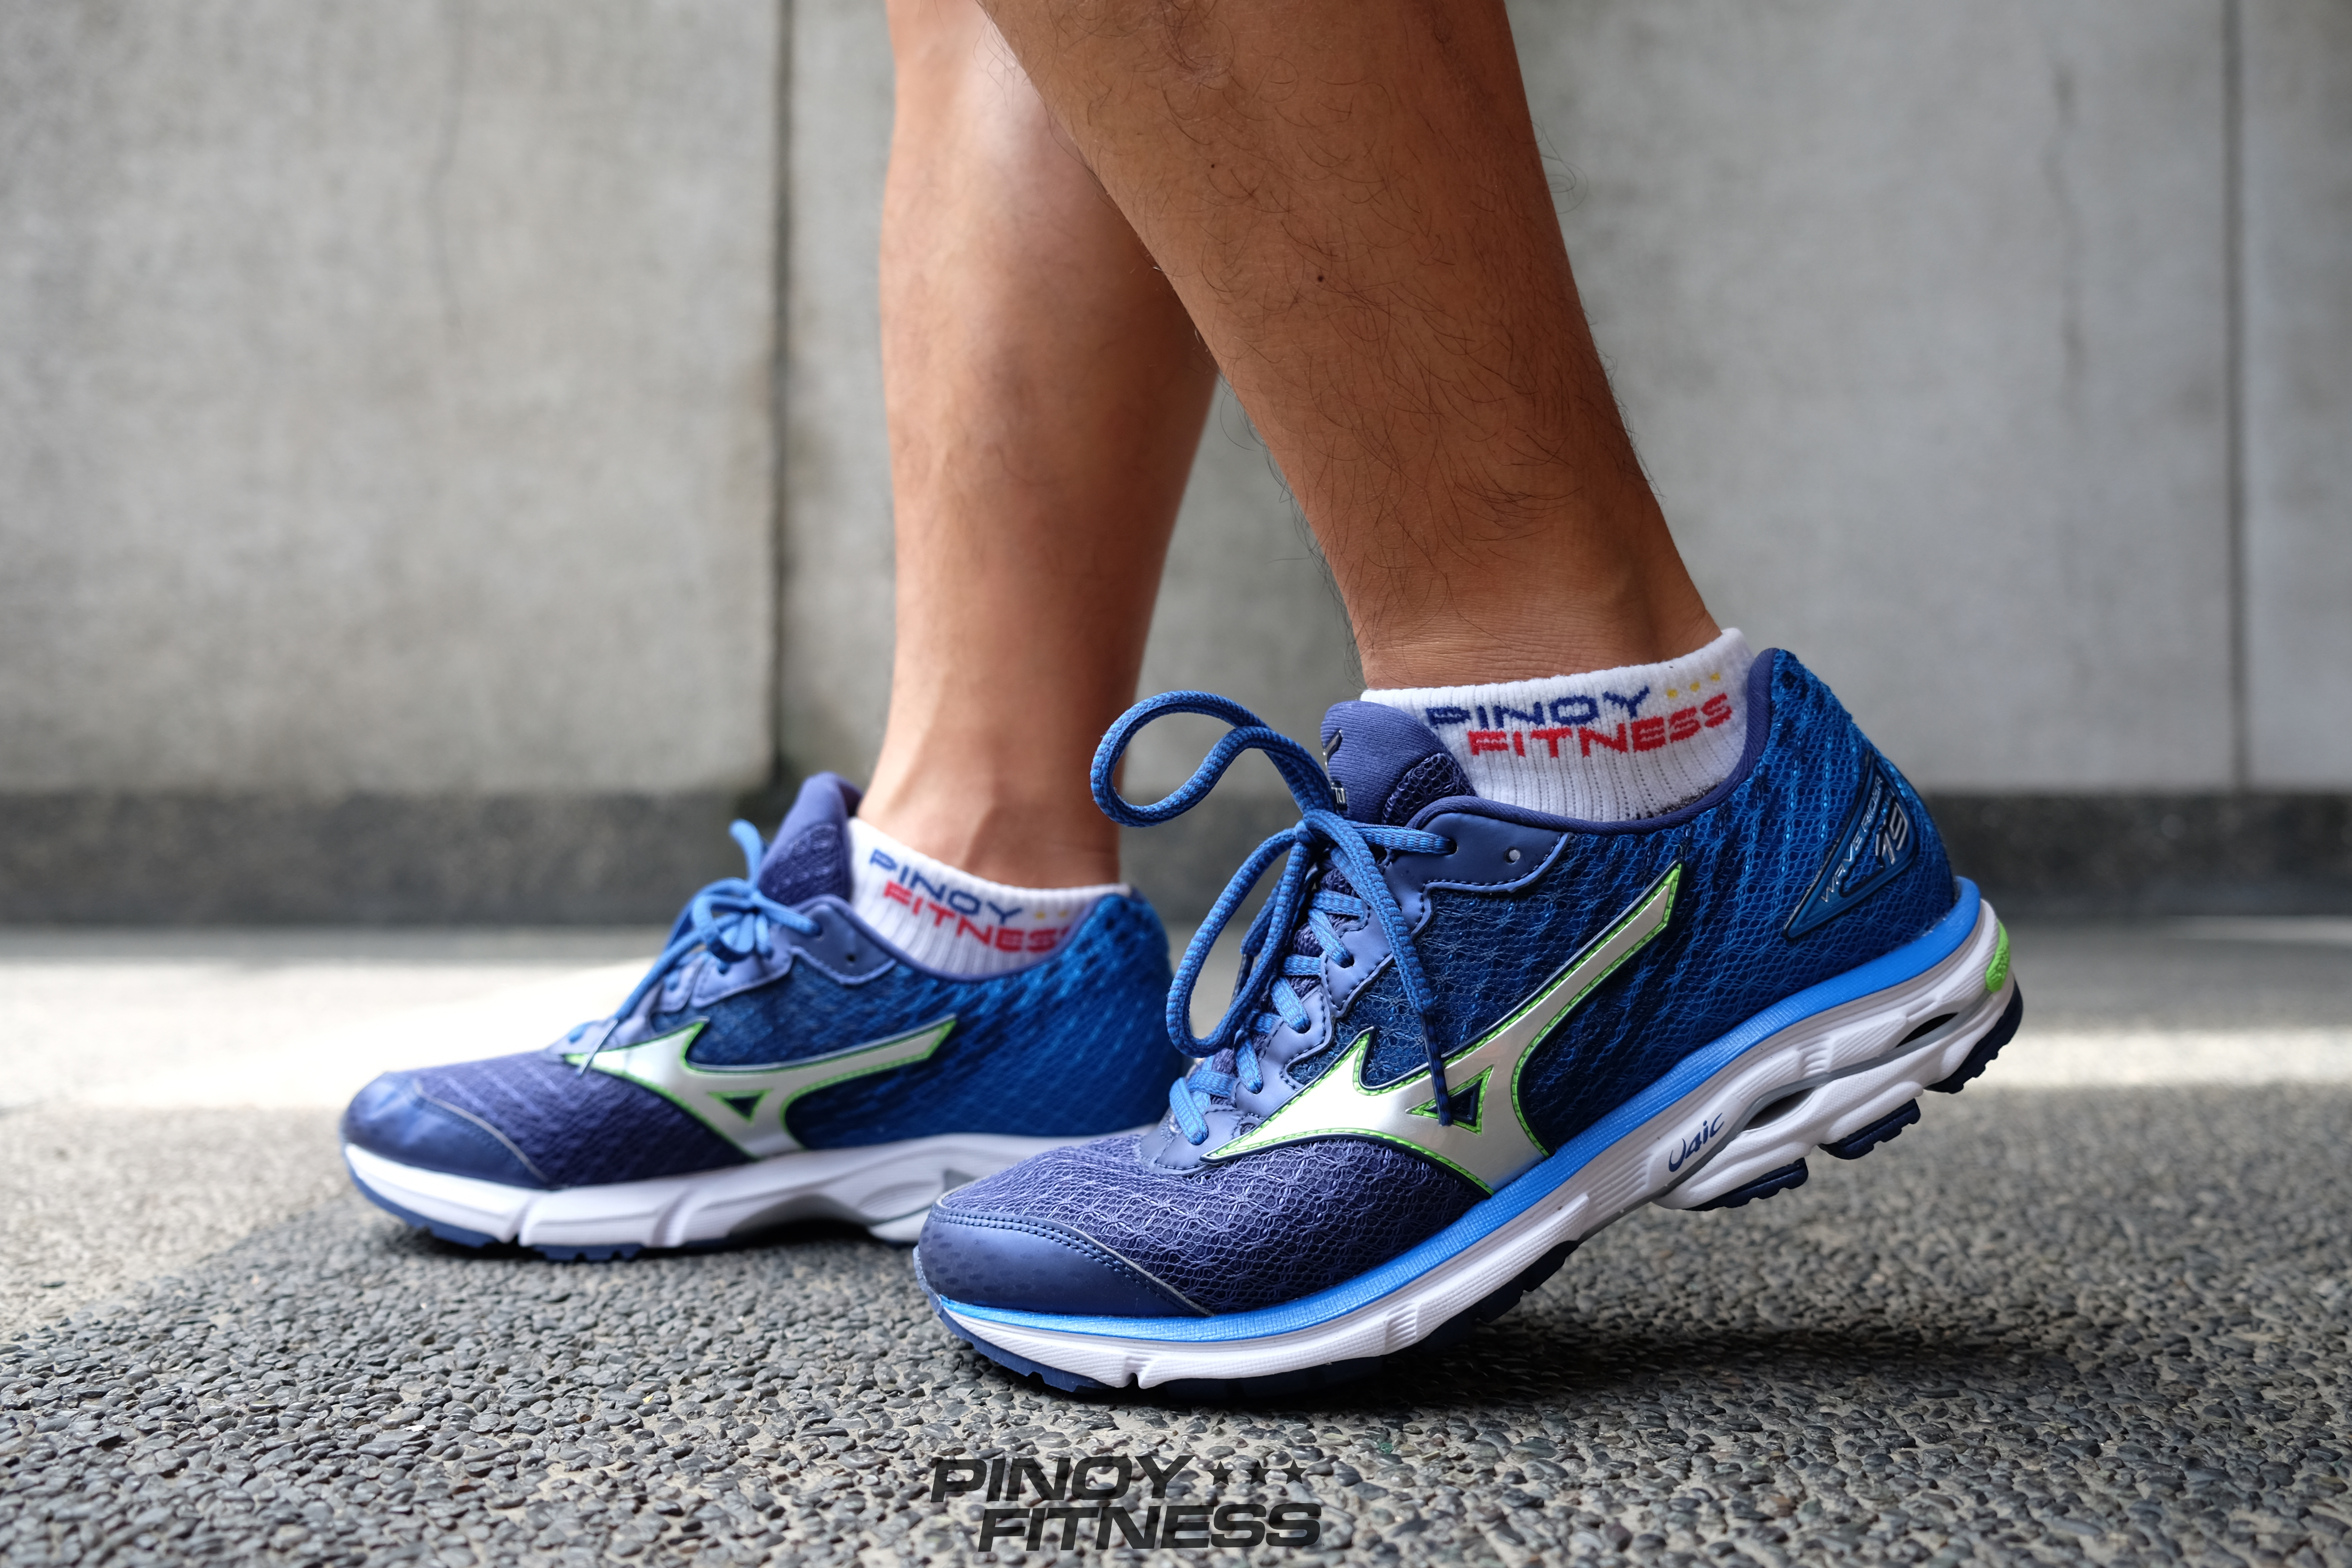 mizuno wave rider 19 fit